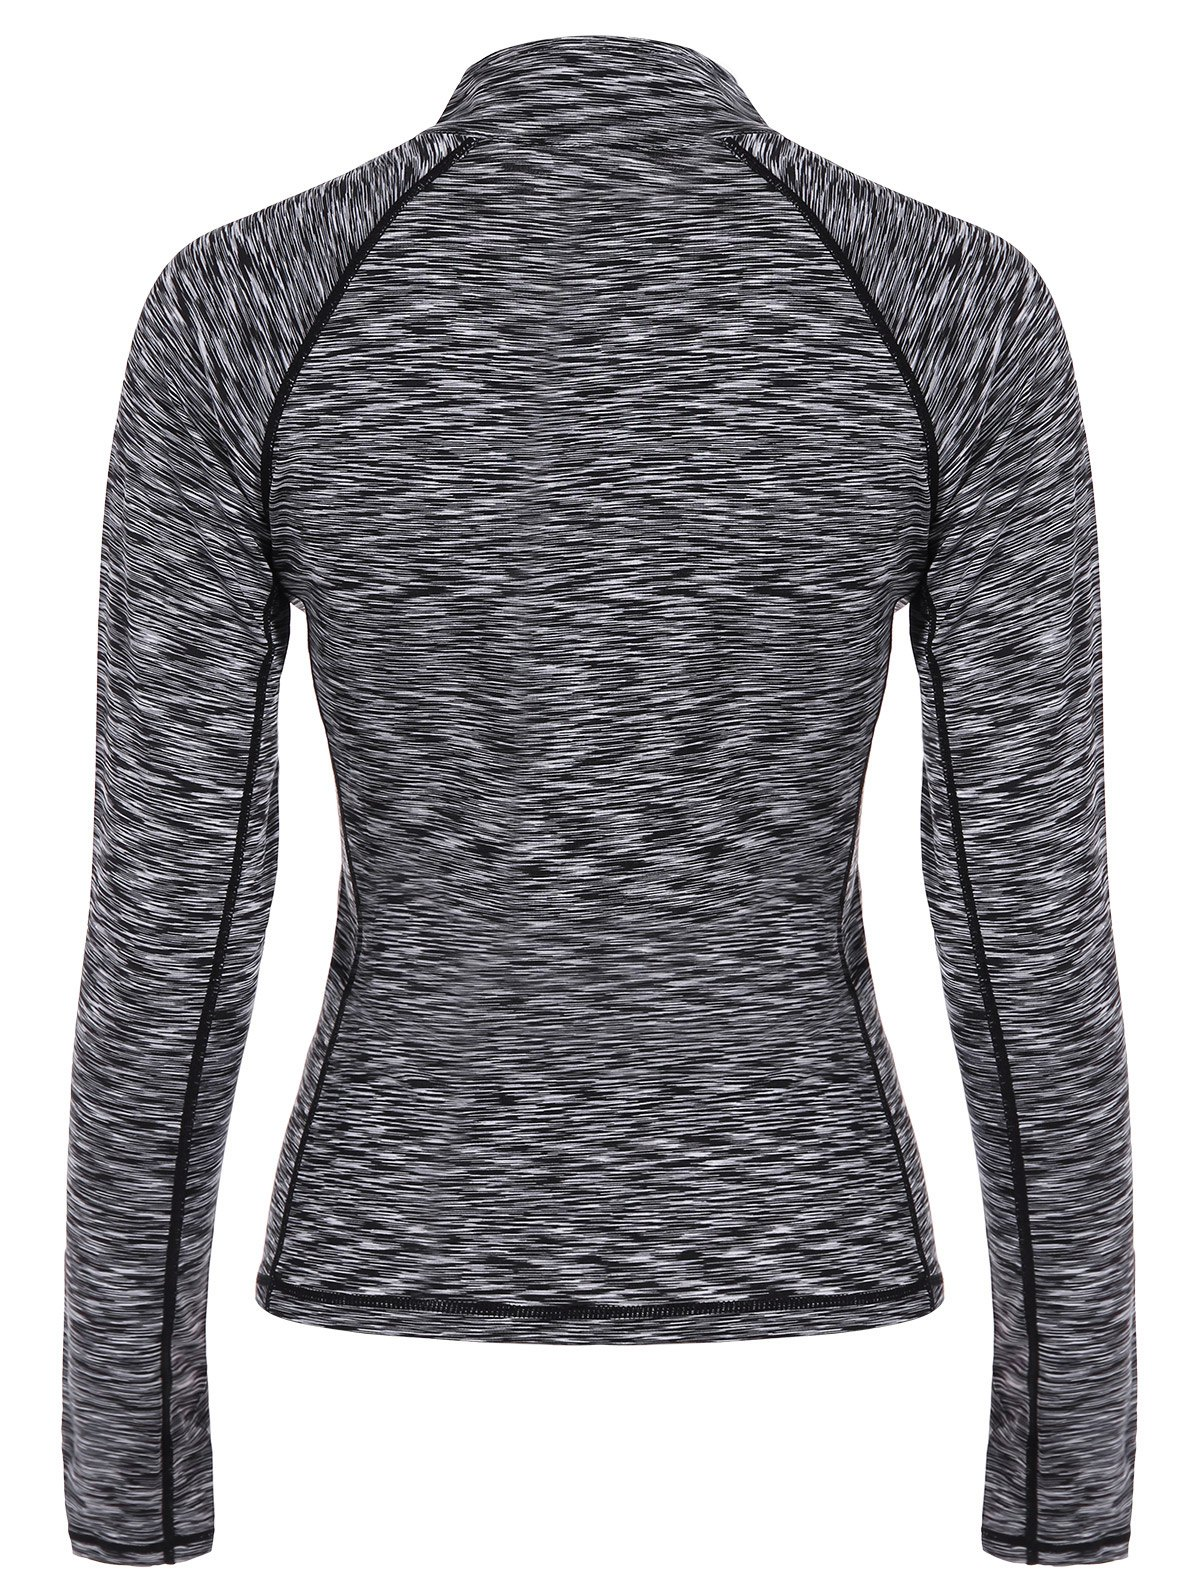 Half-zip Heathered Topstitched Long Sleeve Gym Top - GRAY M